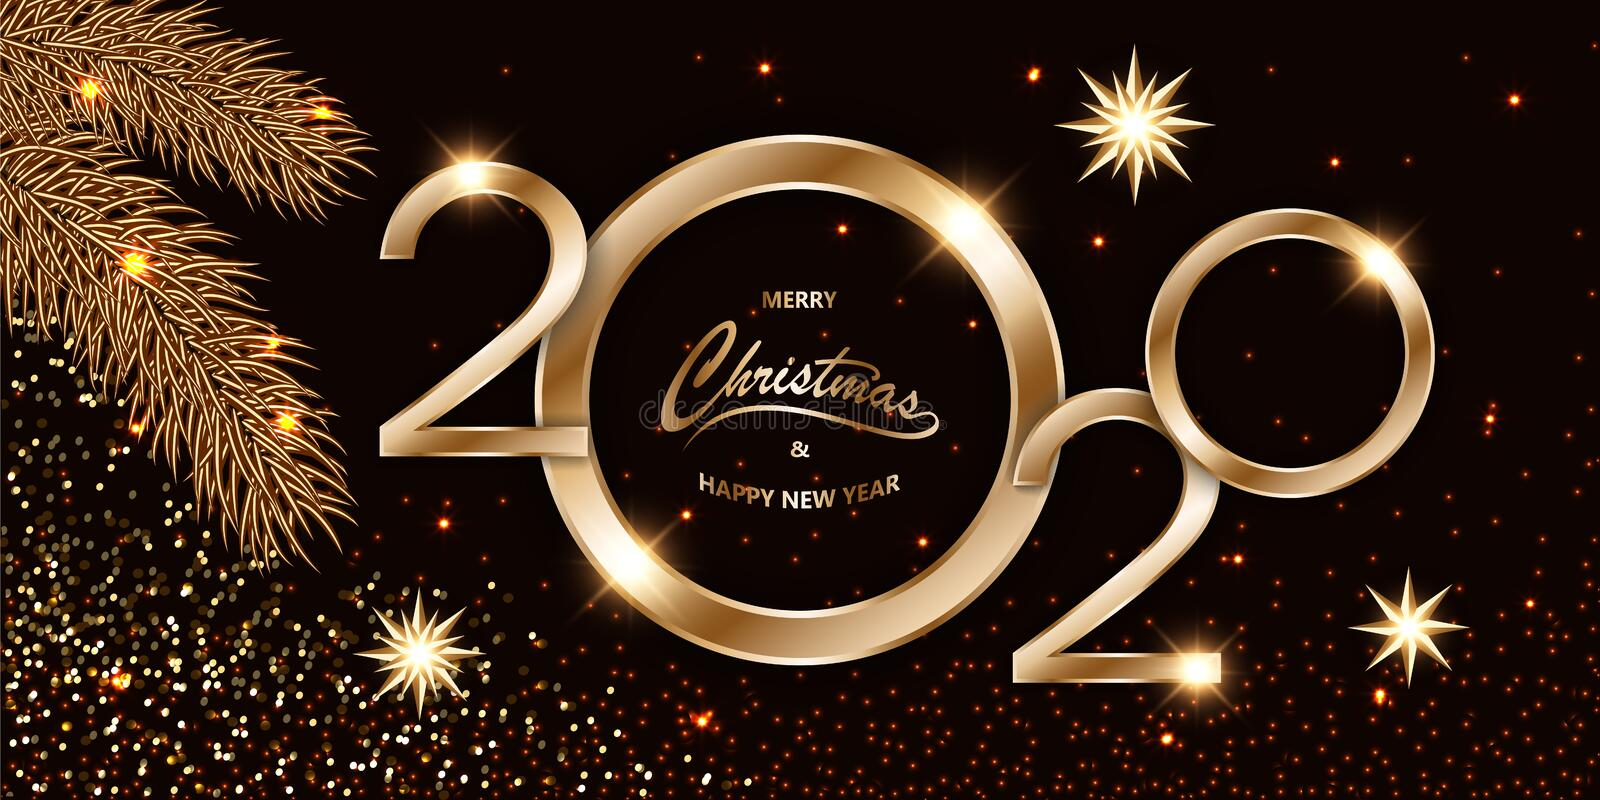 Merry Chistmas Happy New Year 2020 shining luxury Xmas dark background with gold text, confetti, fir branches and glitter star. Merry Chistmas and Happy New Year royalty free illustration